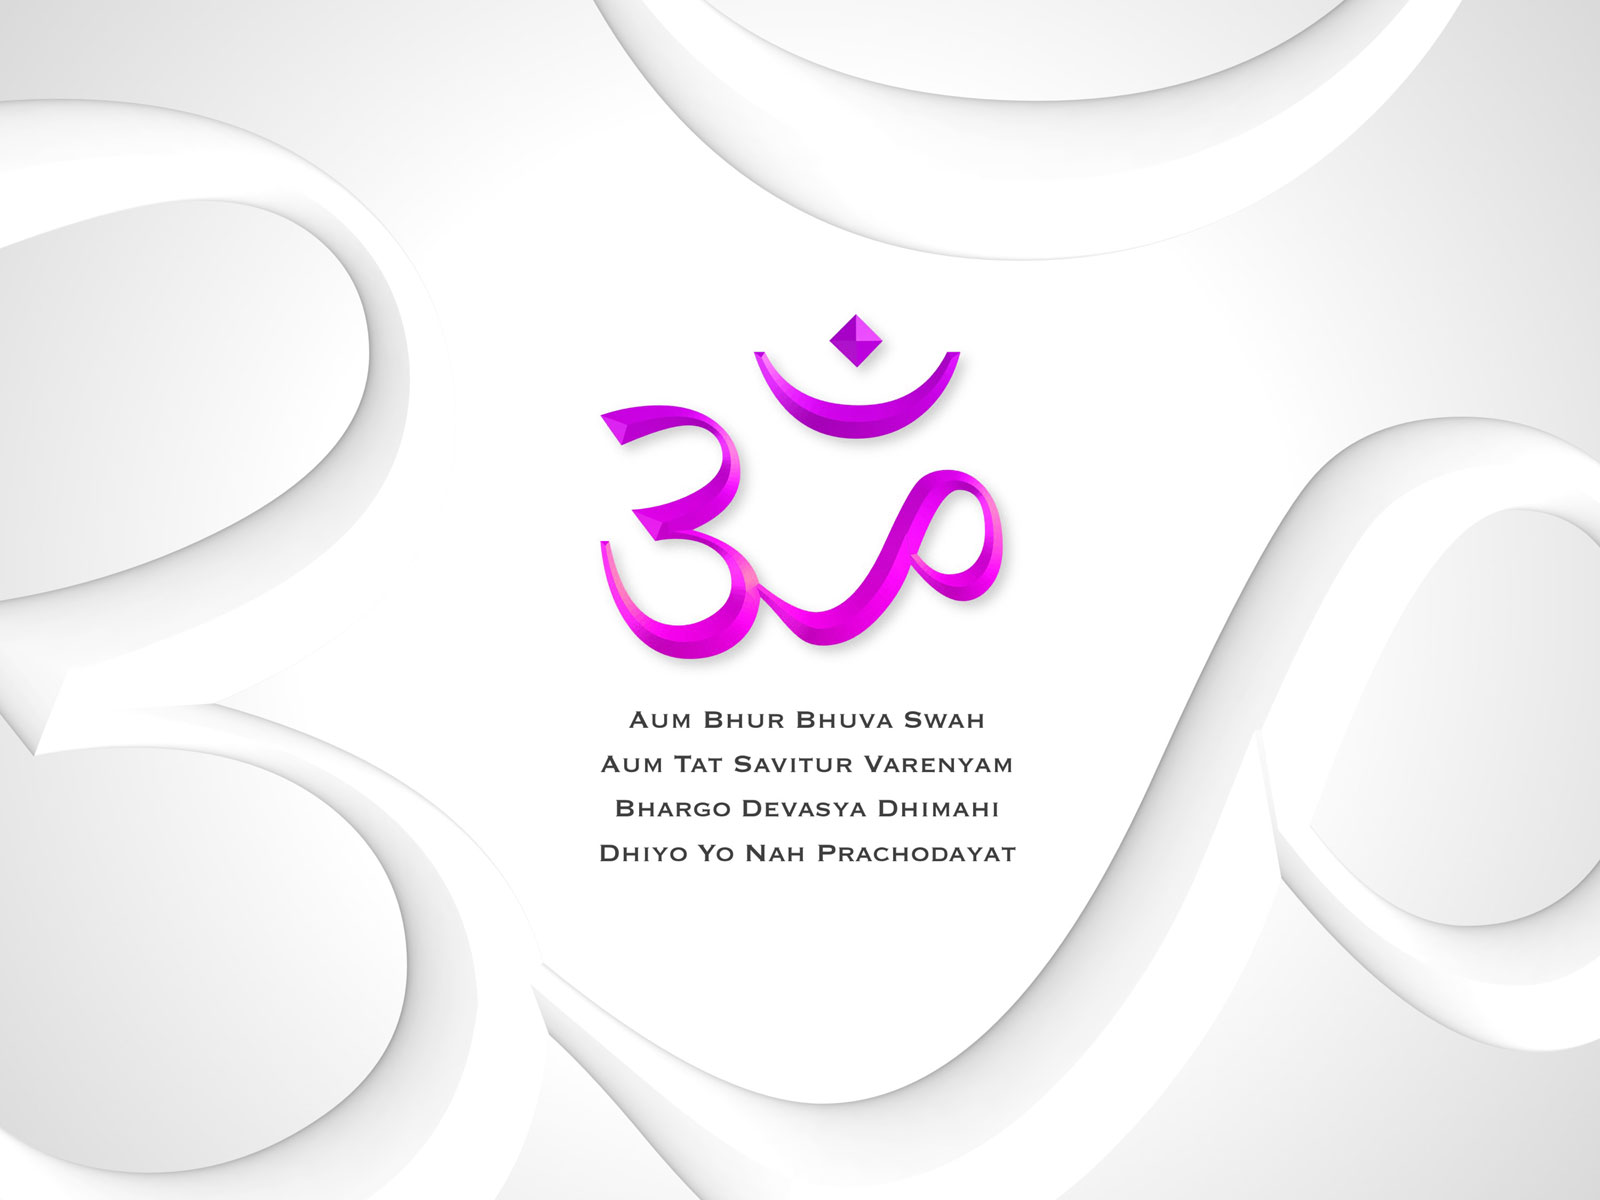 Laxmi Mantra Wallpapers for Desktop Mobile Free Download